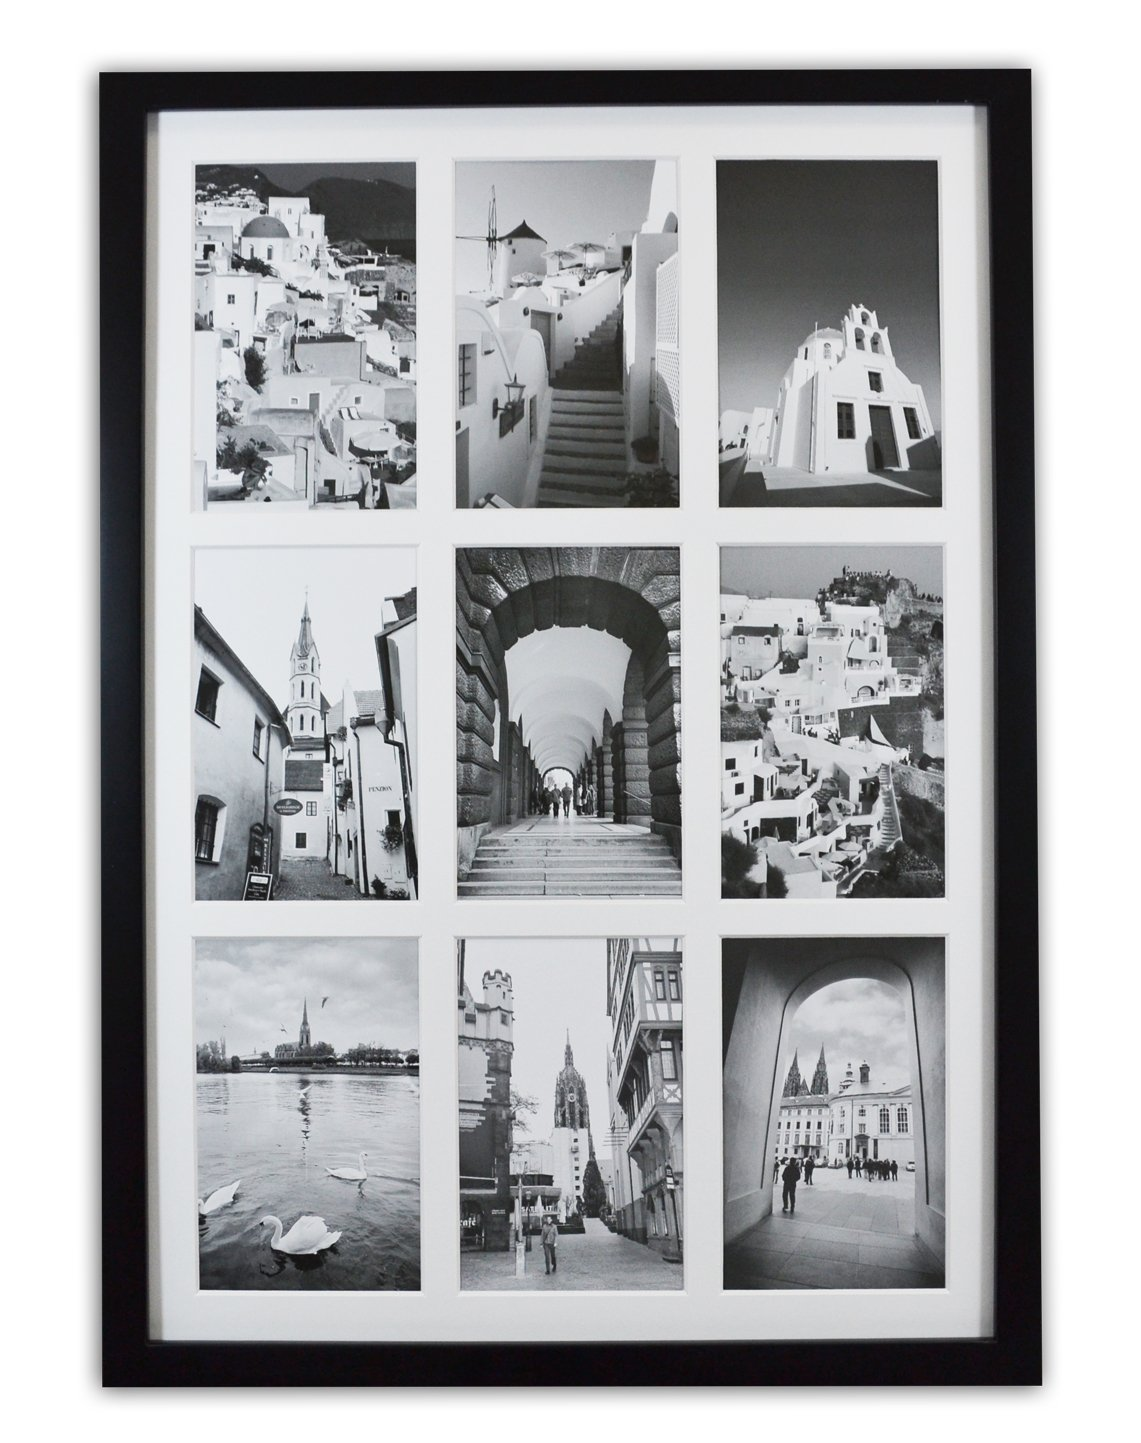 Amazon golden state art 136x197 black photo wood collage amazon golden state art 136x197 black photo wood collage frame with real glass and white displays 9 4x6 pictures arts crafts sewing jeuxipadfo Images